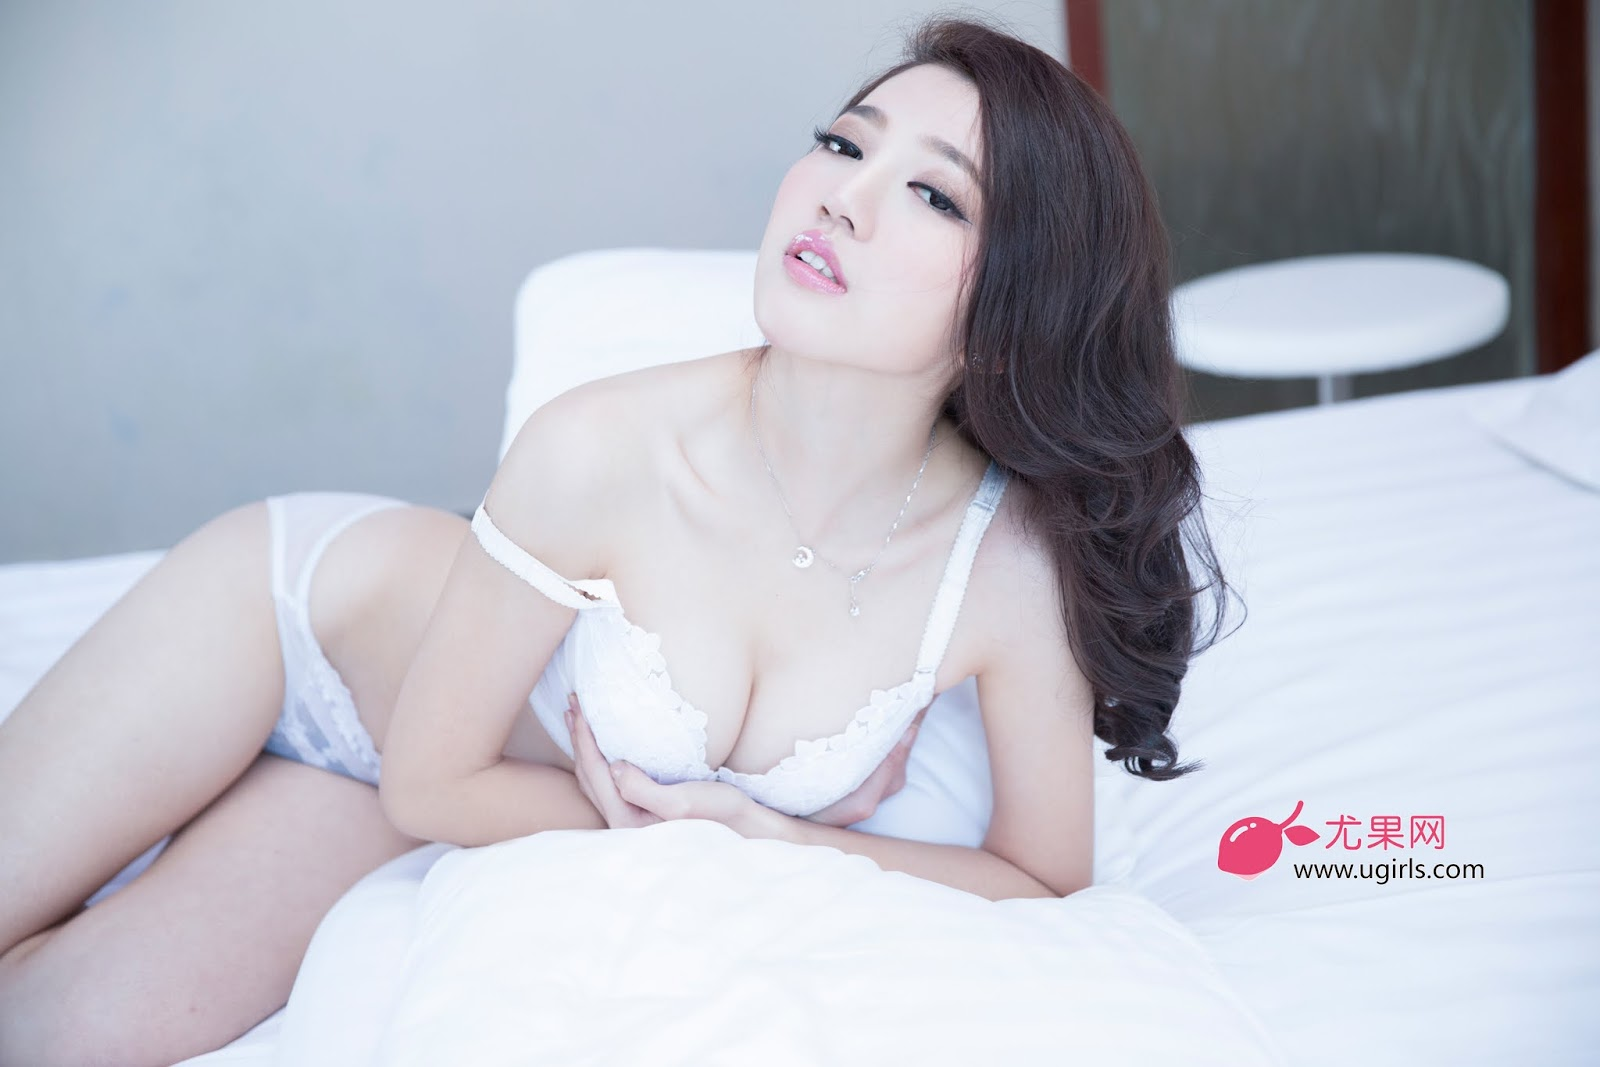 A14A5477 - Hot Model UGIRLS NO.8